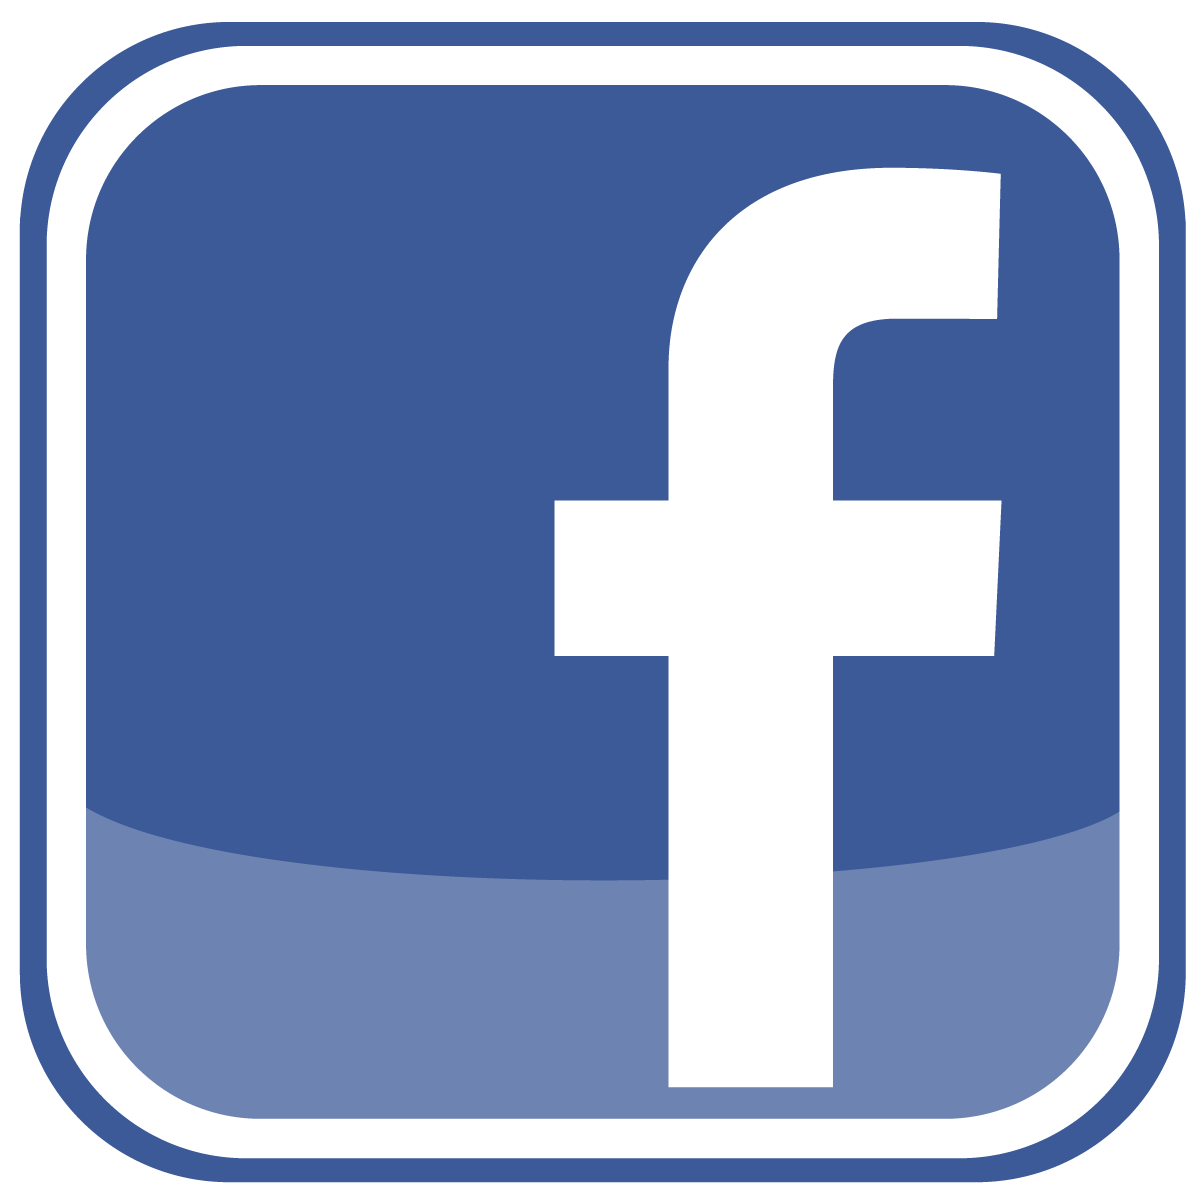 facebook-icon-png-738